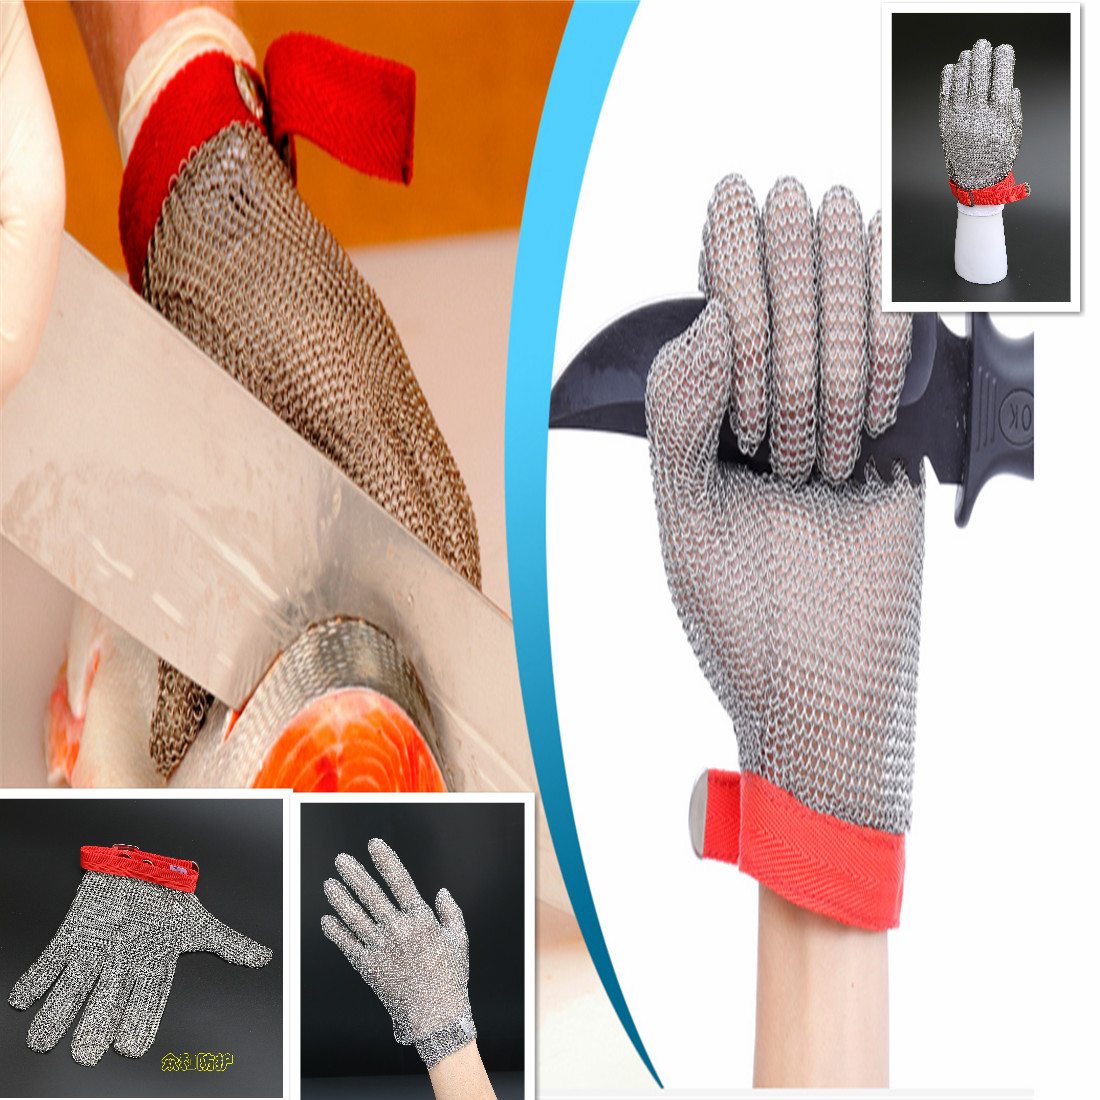 Dubetter Stainless steel mesh safety gloves with hook strap